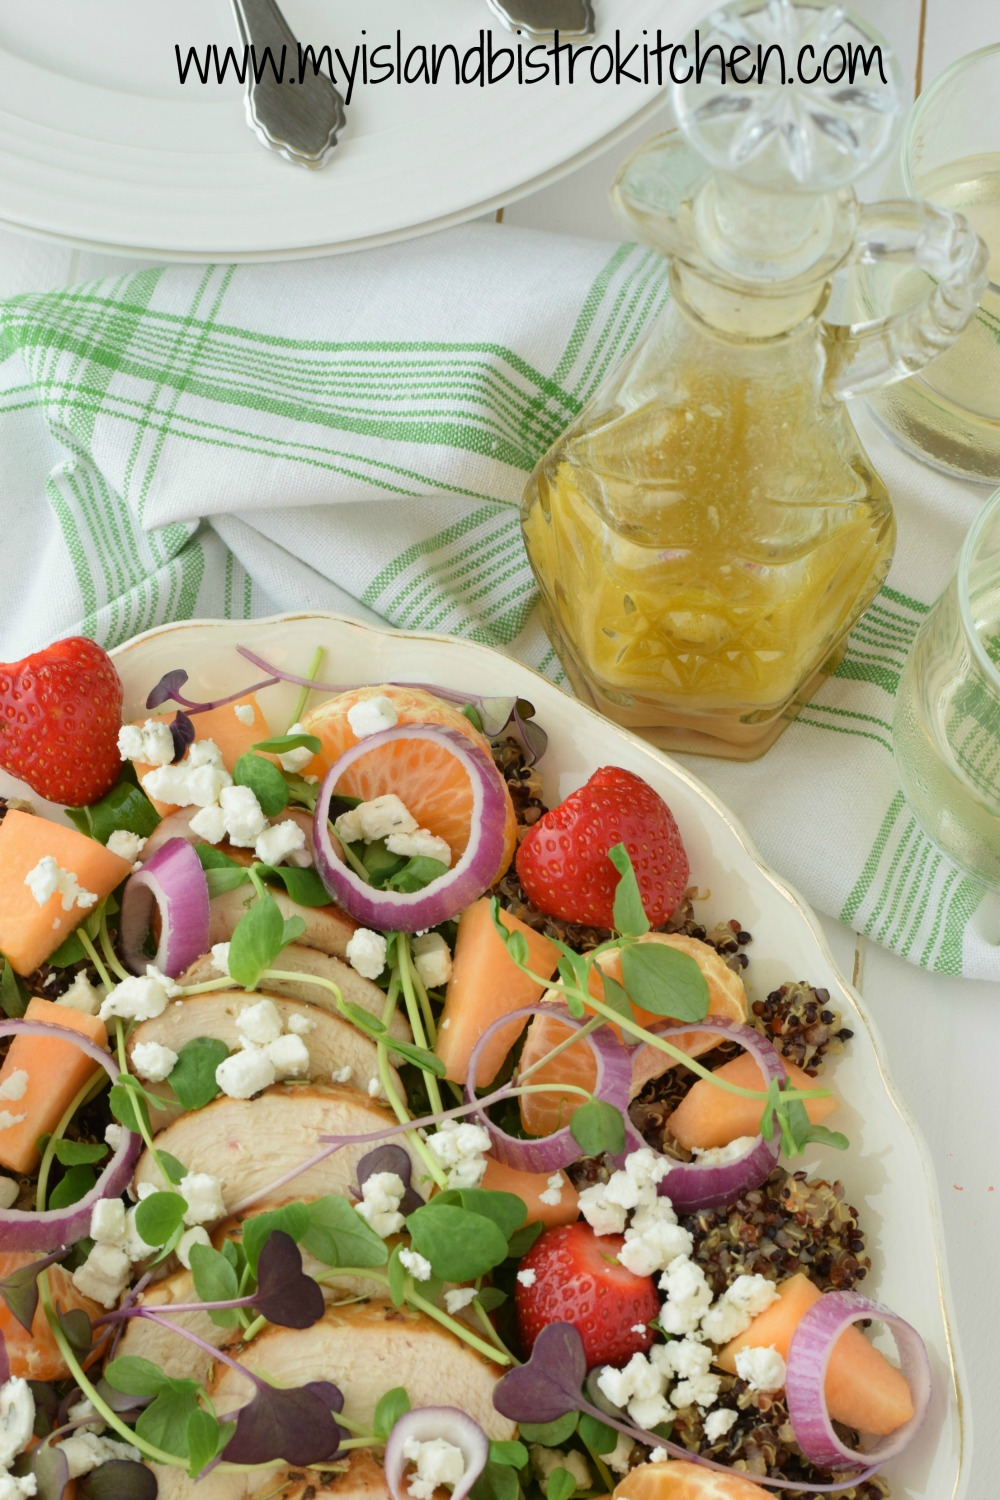 Chicken and Quinoa Salad with Star Anise and Orange Vinaigrette